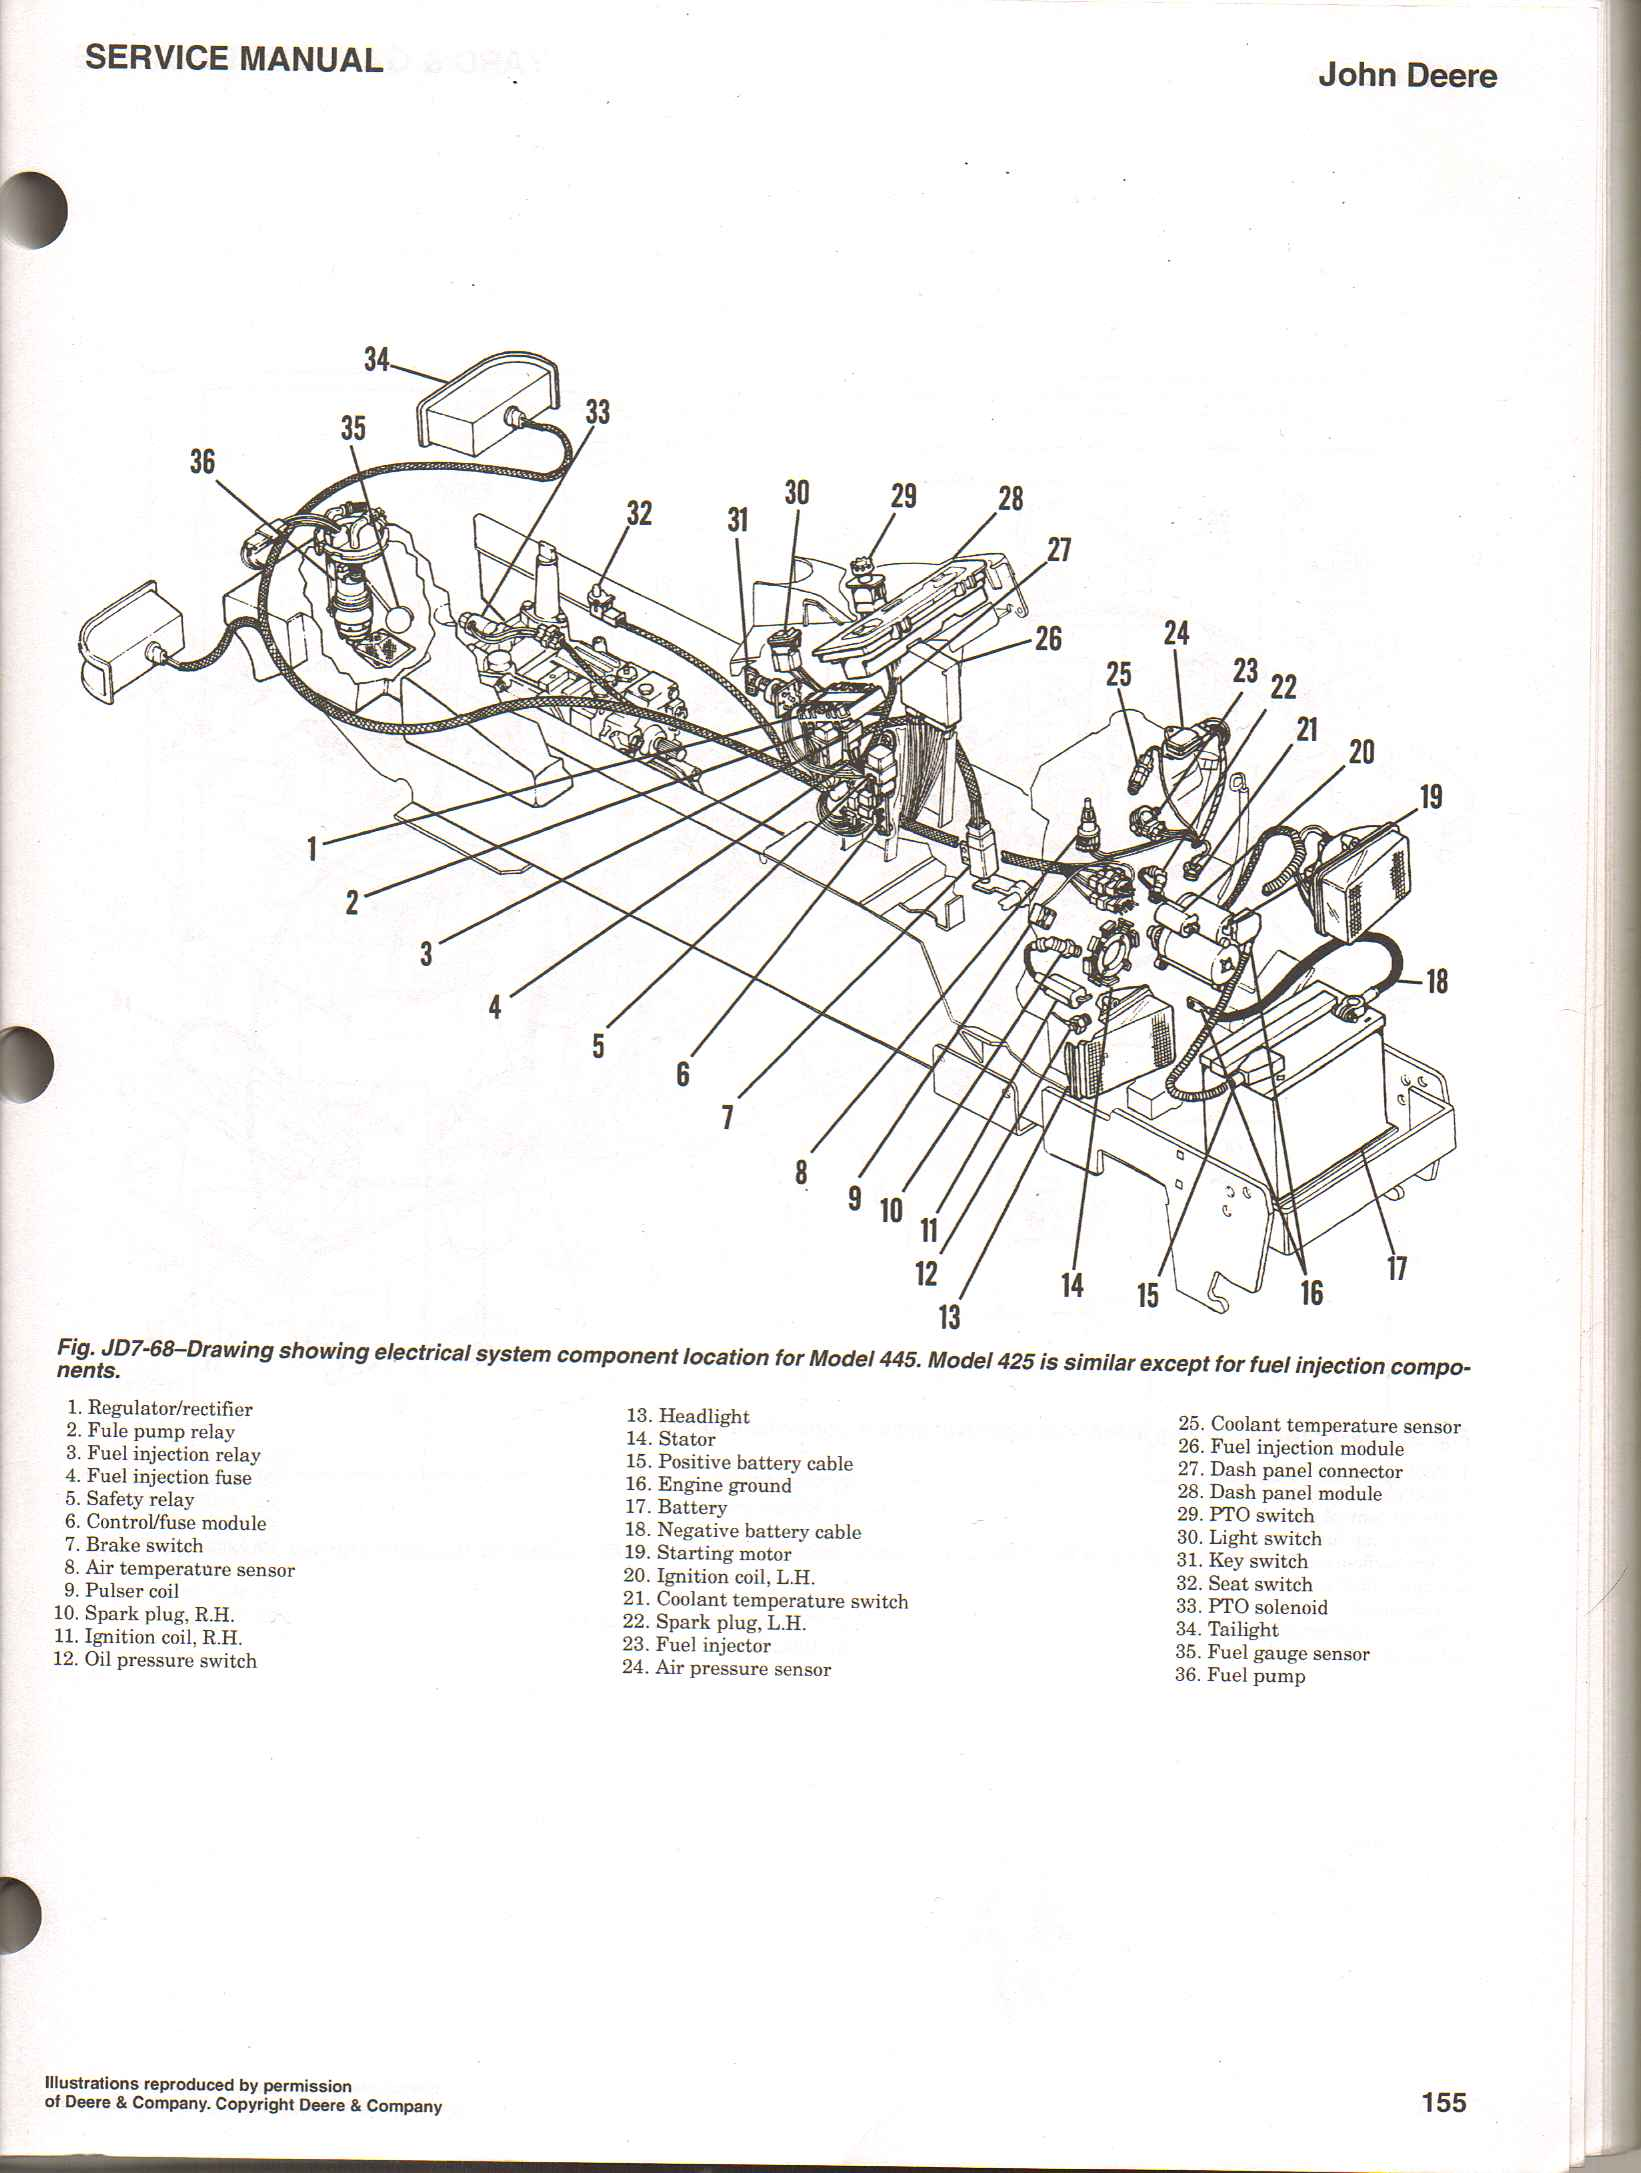 John Deere 425 Wiring Diagram Download 950 Harness 445 And Schematics On